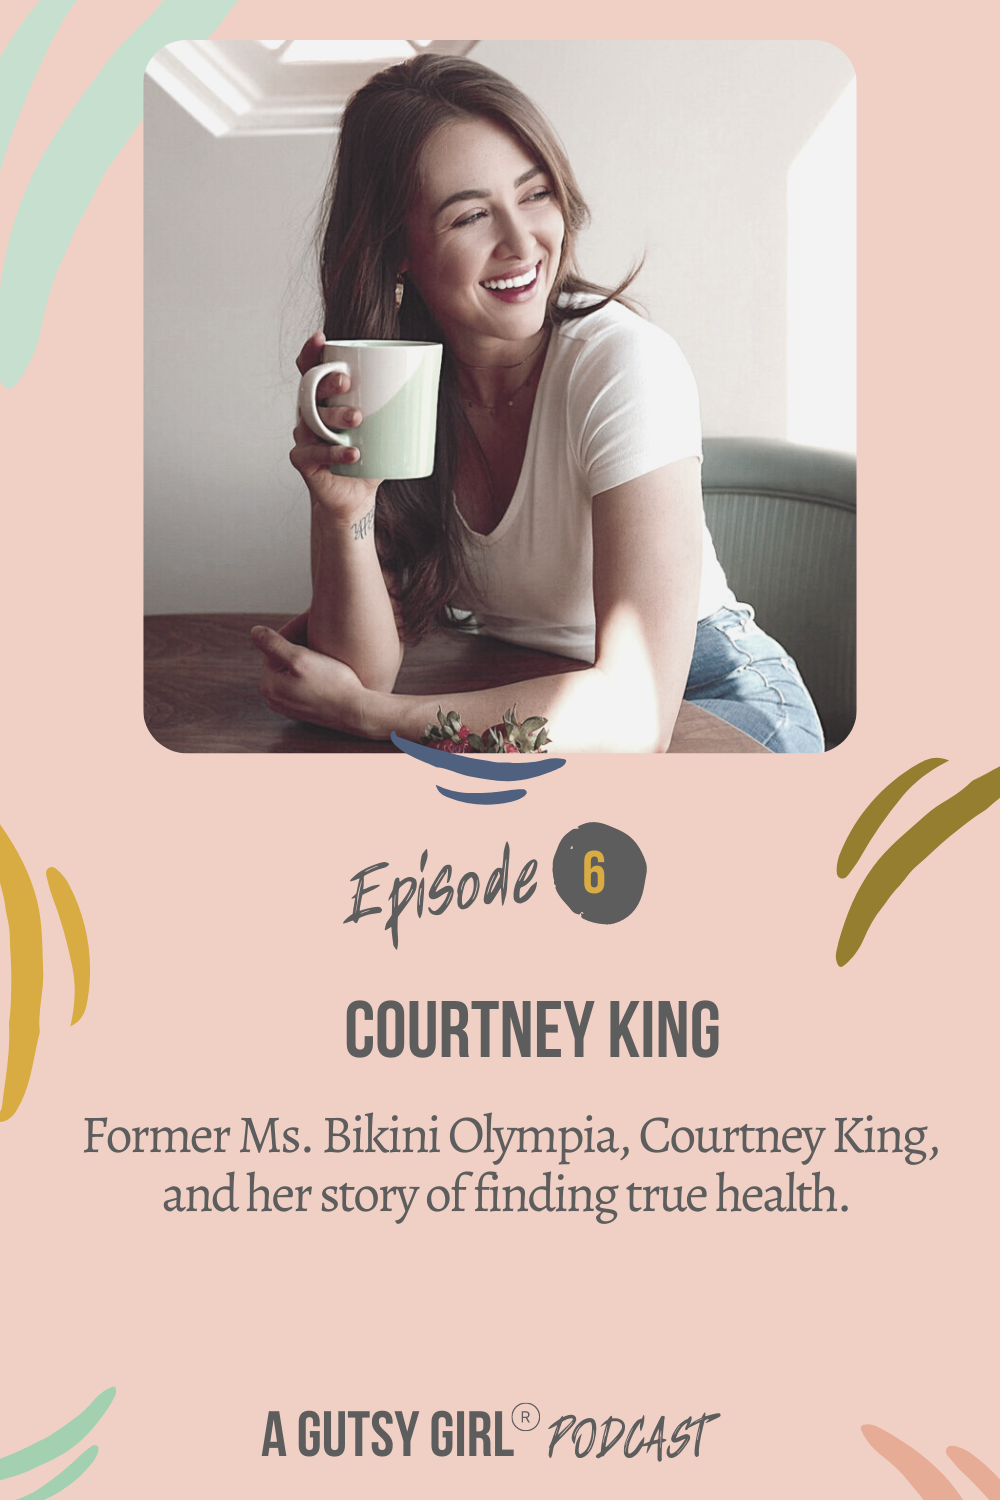 Episode 6 A Gutsy Girl podcast Courtney King {story of finding true health} agutsygirl.com #agutsygirl #healthpodcast #wellnesspodcast #courtneyking